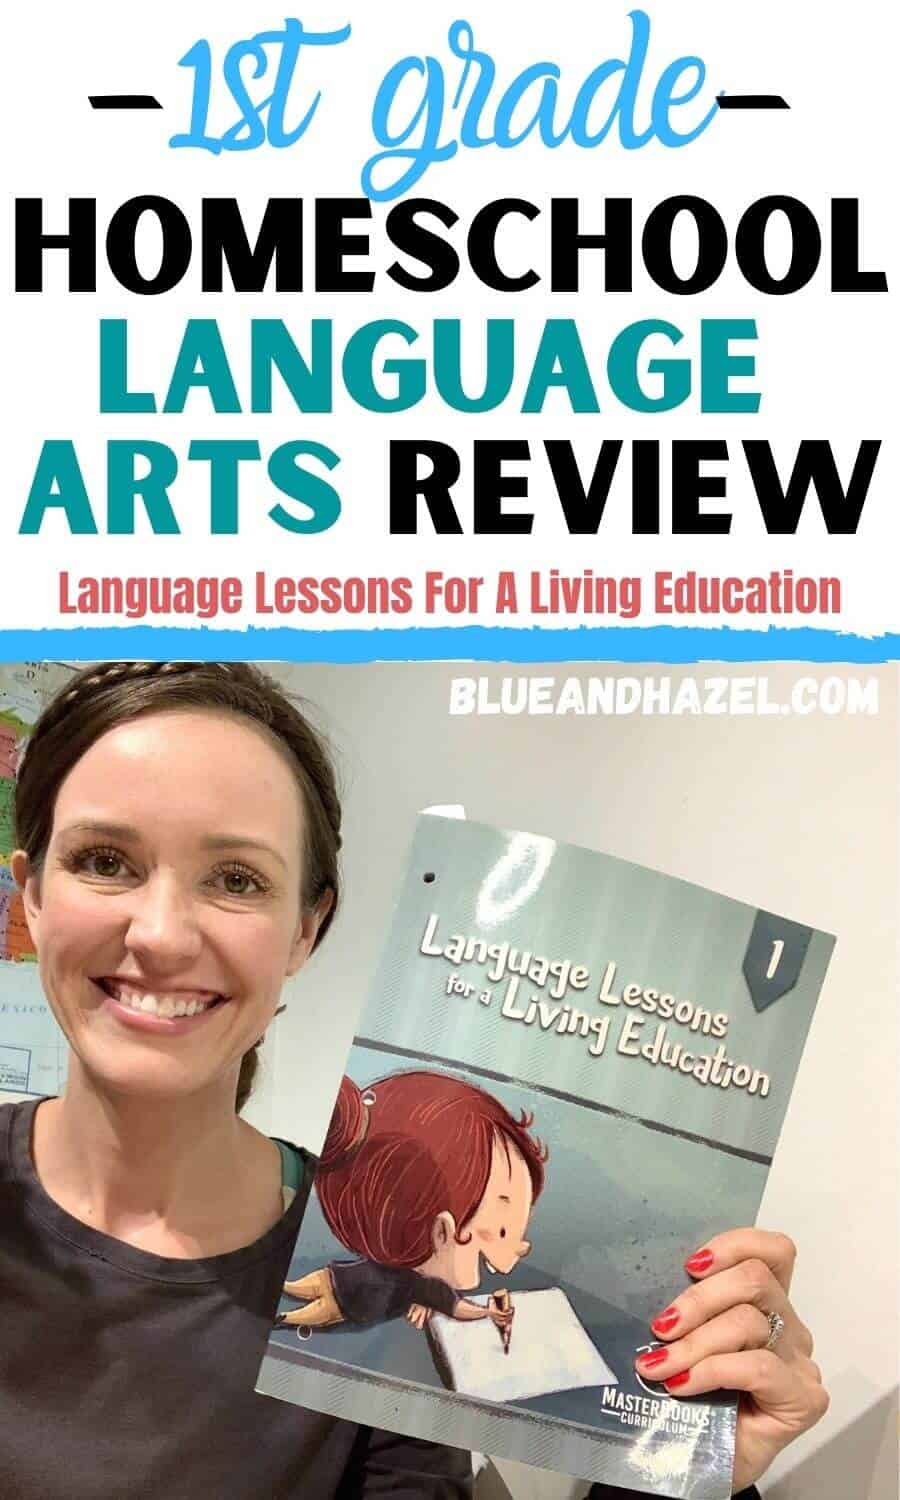 A homeschool mom holding up Language Lessons For A Living Education Level 1 while she reviews the homeschool curriculum.